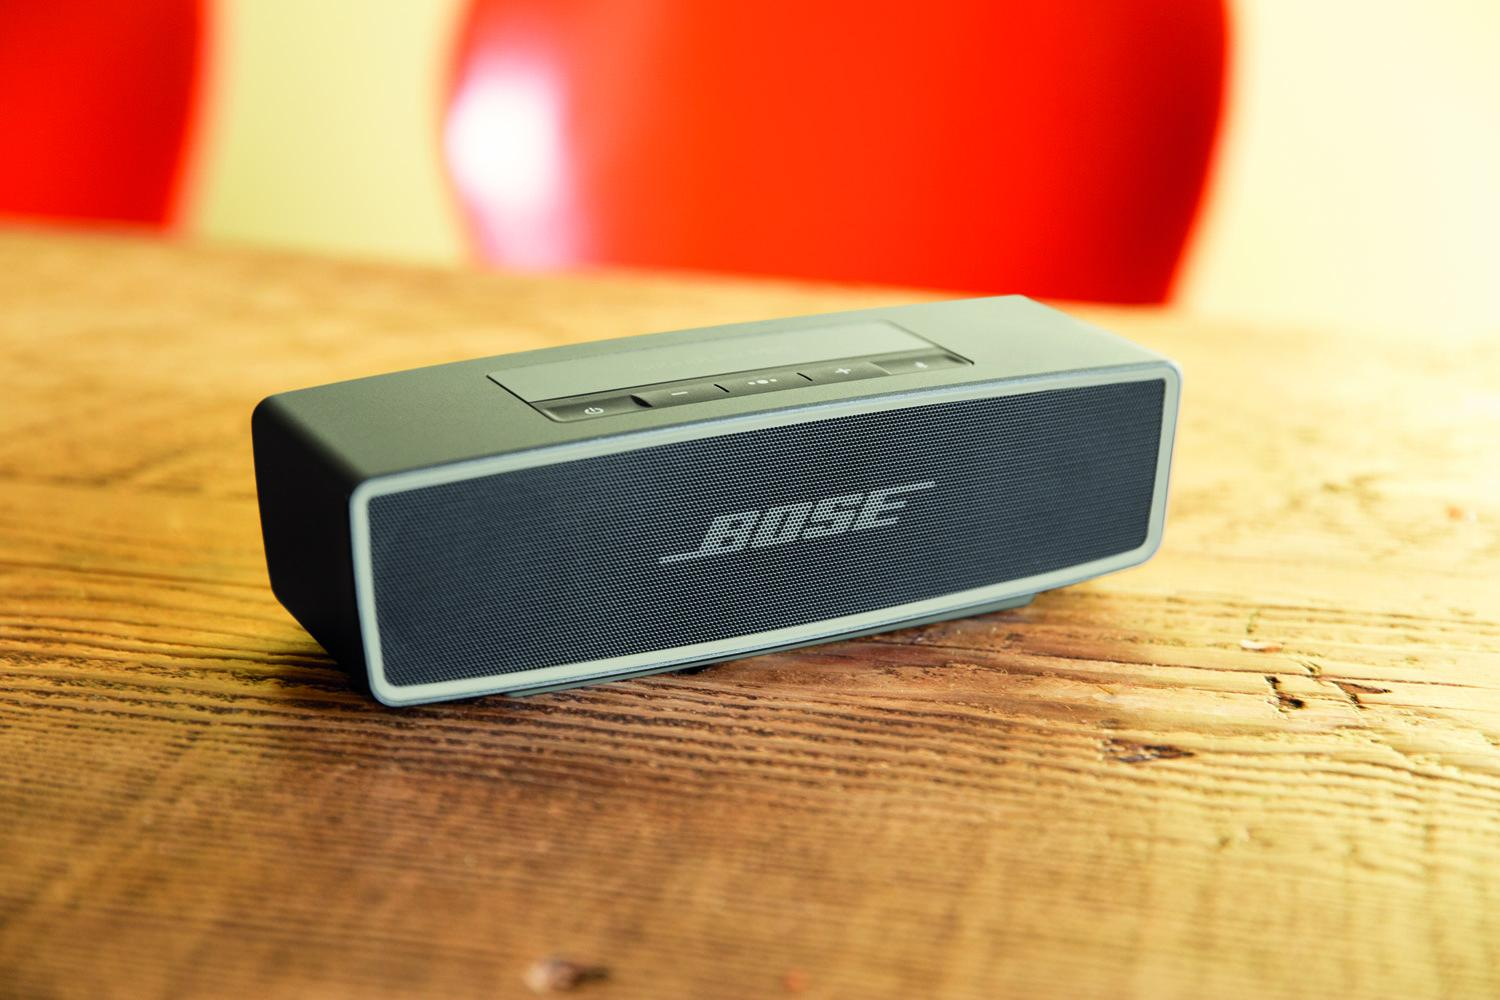 Bose's speaker lineup gets another sequel in the Bose SoundLink Mini II